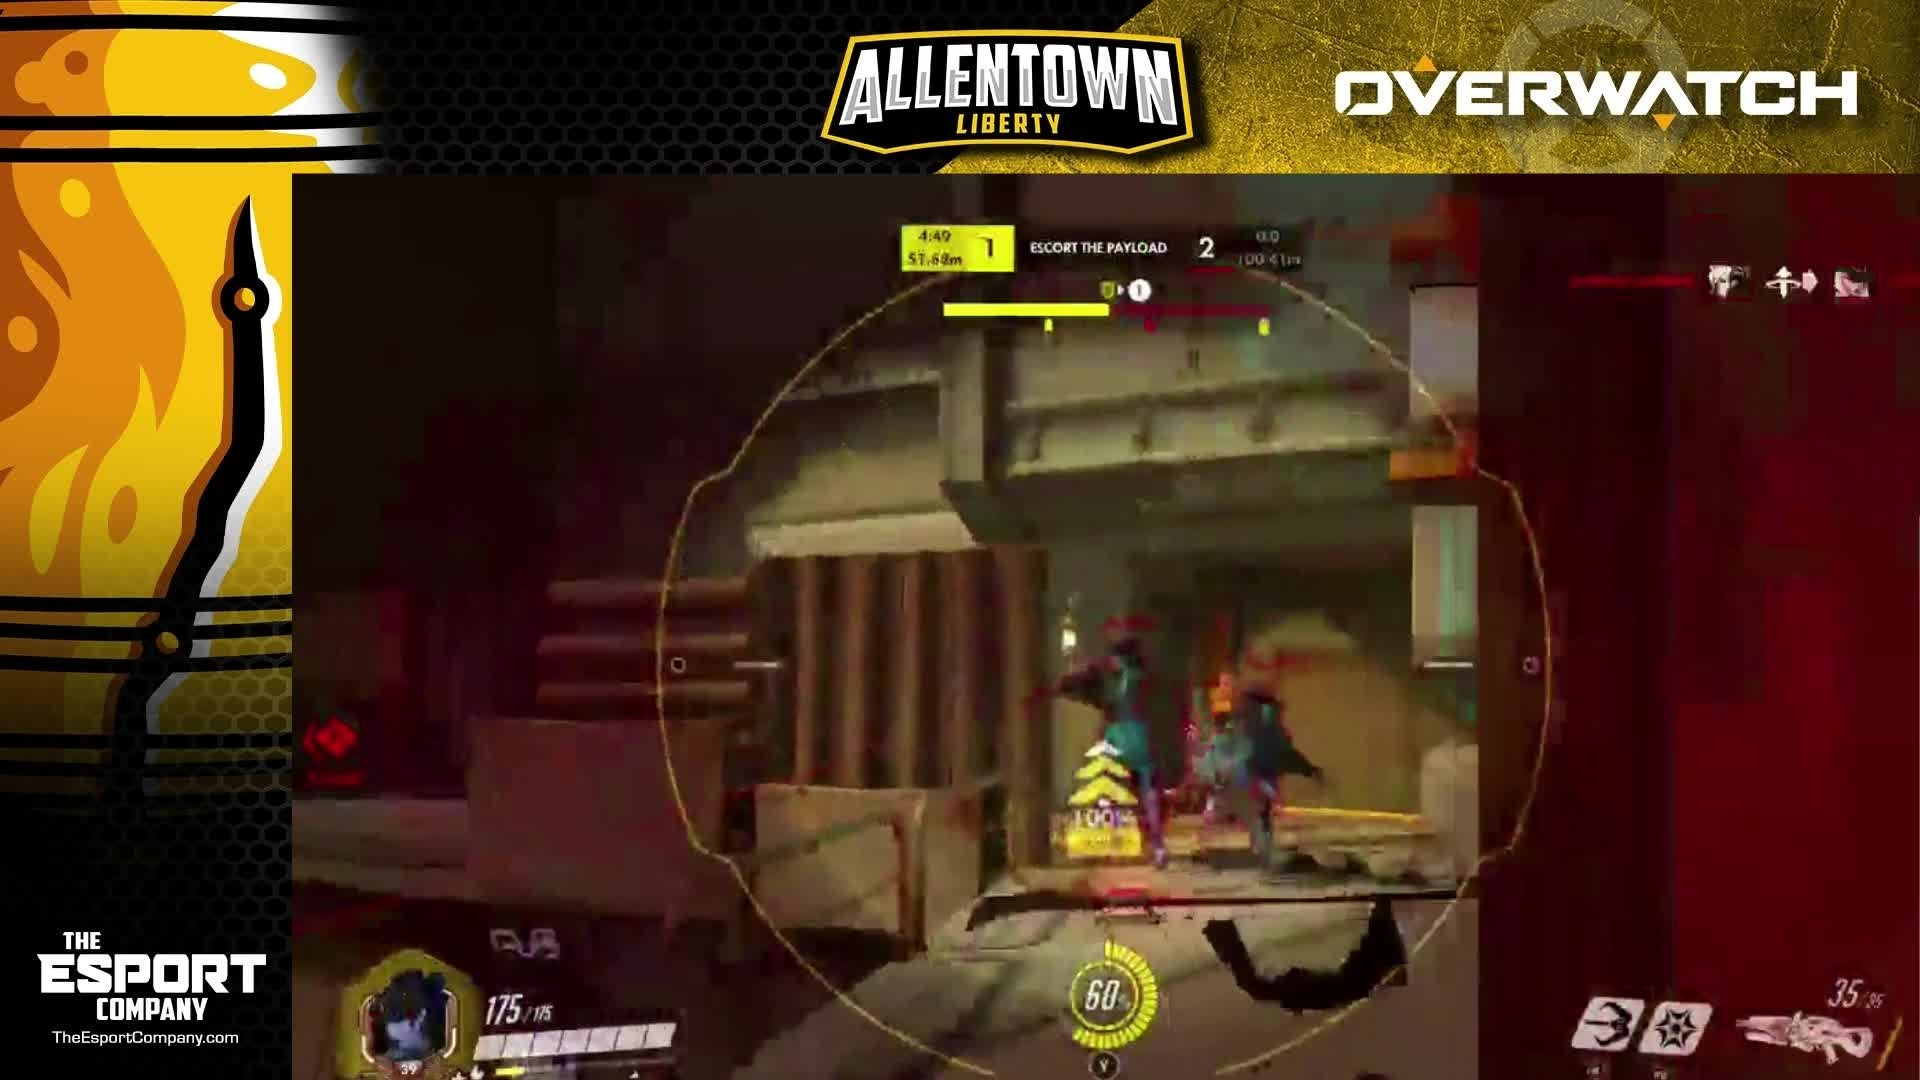 Overwatch: General - Skill or Luck? video cover image 1